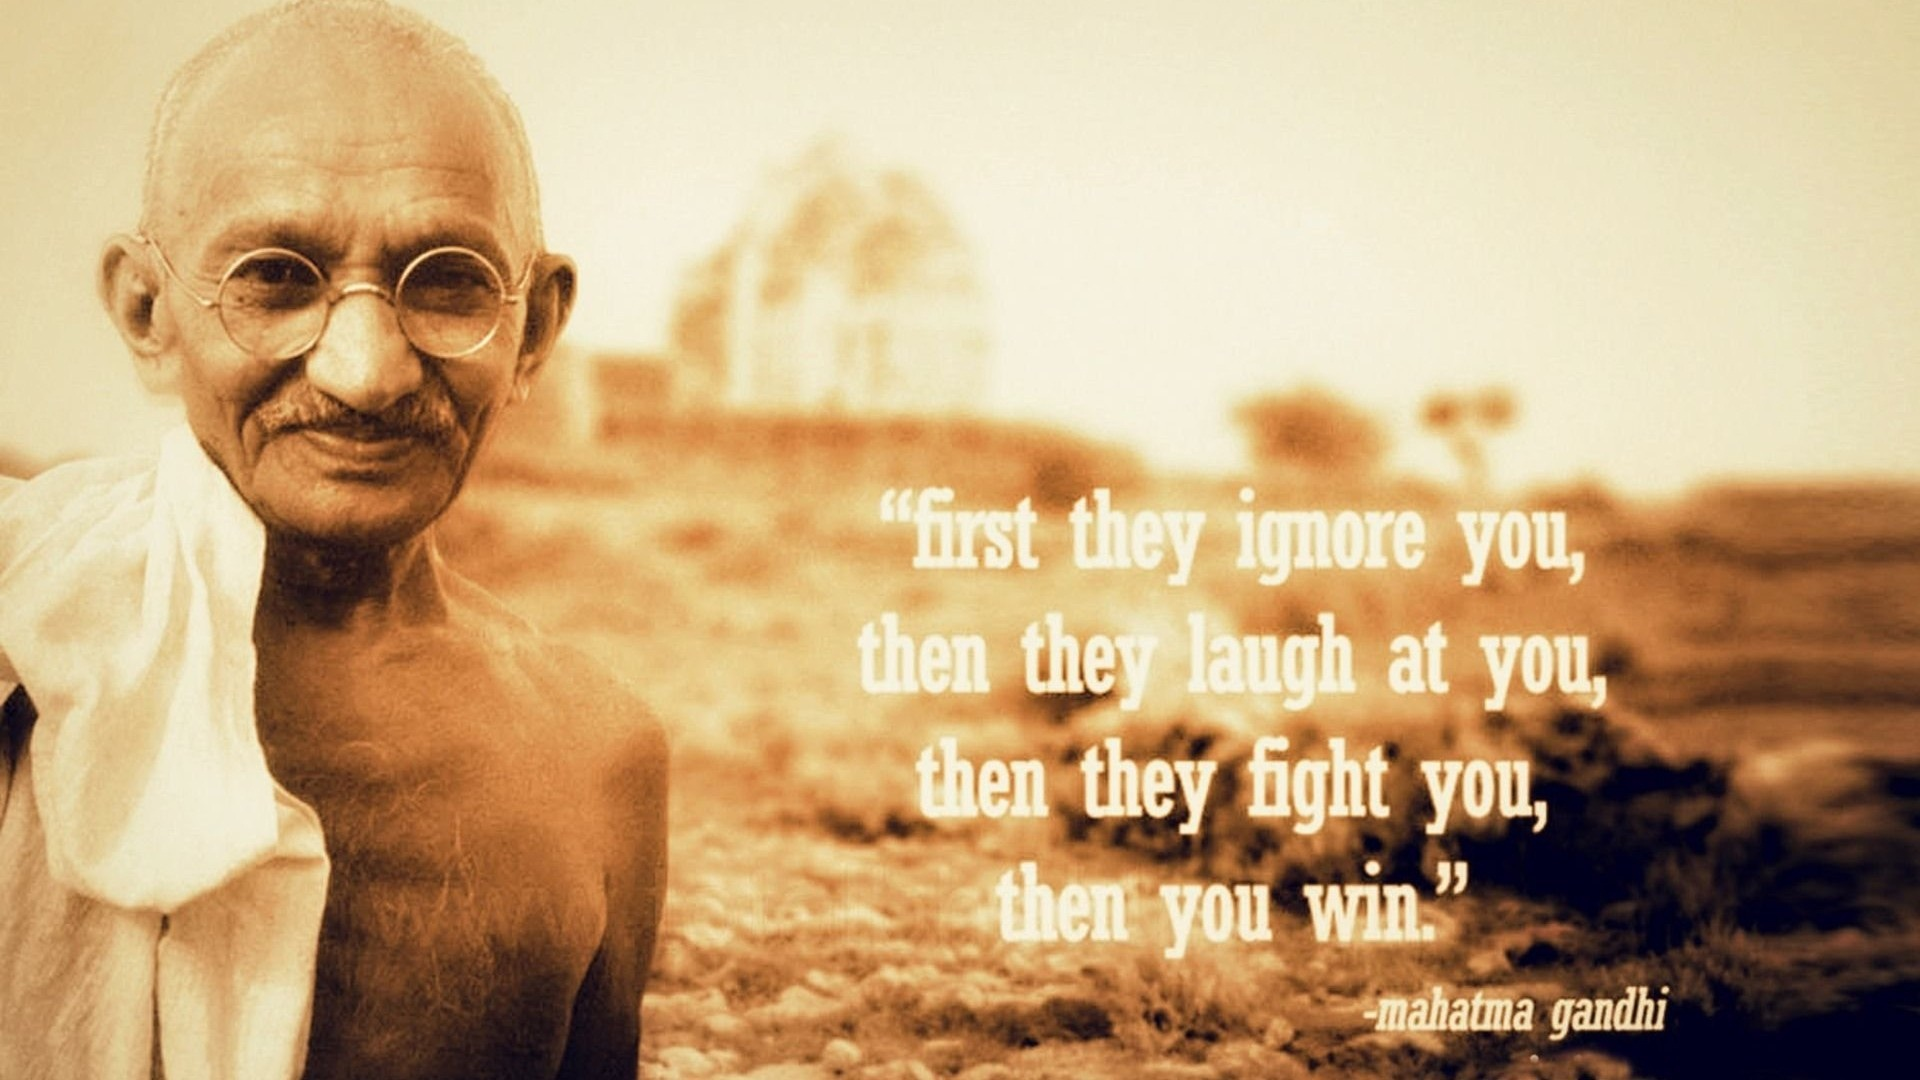 Mahatma Gandhi Wallpaper 1024x768: High Definition Pictures Of People